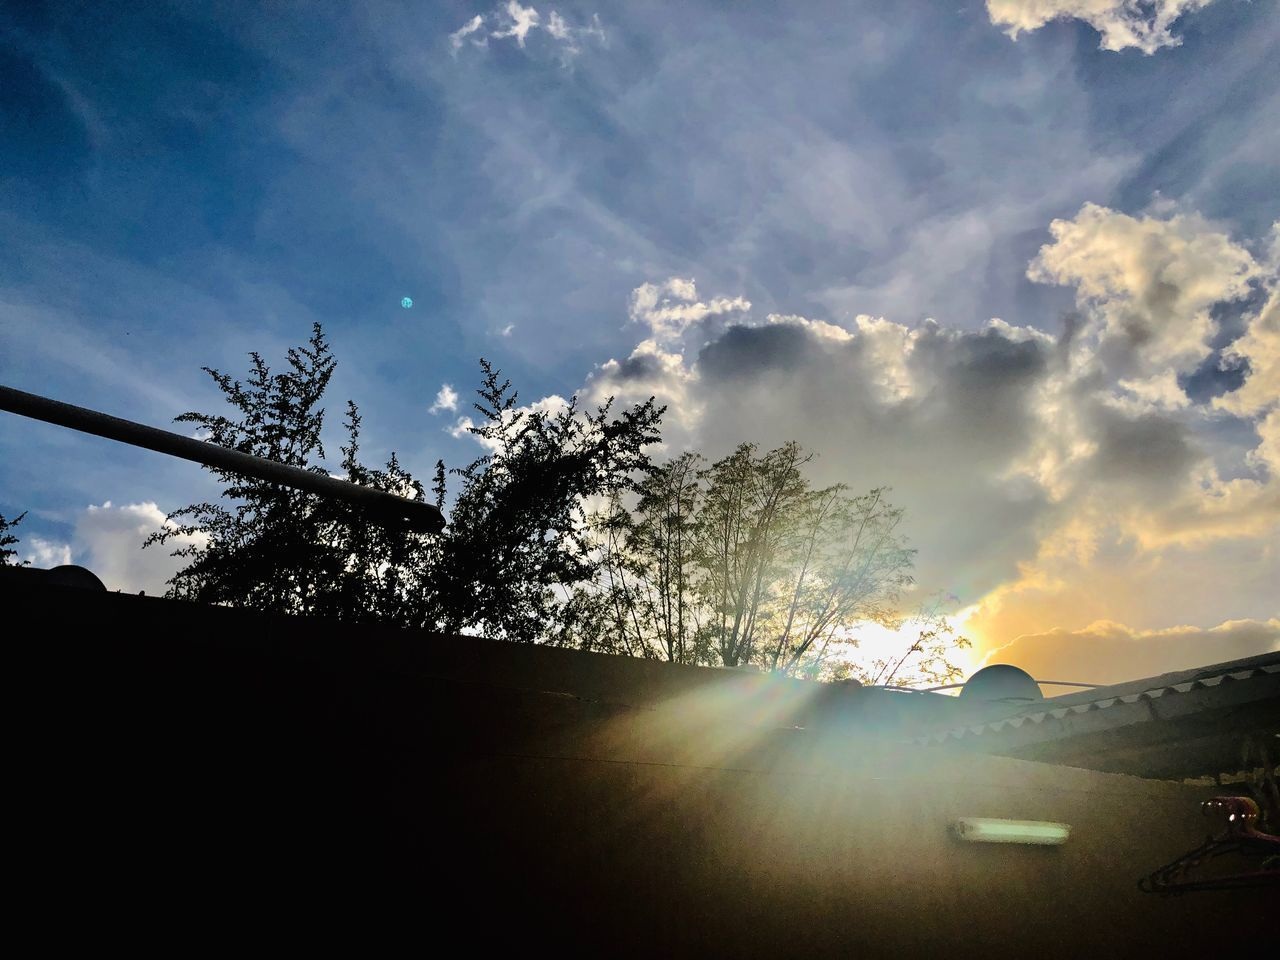 sky, cloud - sky, tree, sunlight, plant, nature, sun, lens flare, sunbeam, silhouette, car, motor vehicle, no people, mode of transportation, transportation, sunset, low angle view, beauty in nature, architecture, built structure, outdoors, bright, solar flare